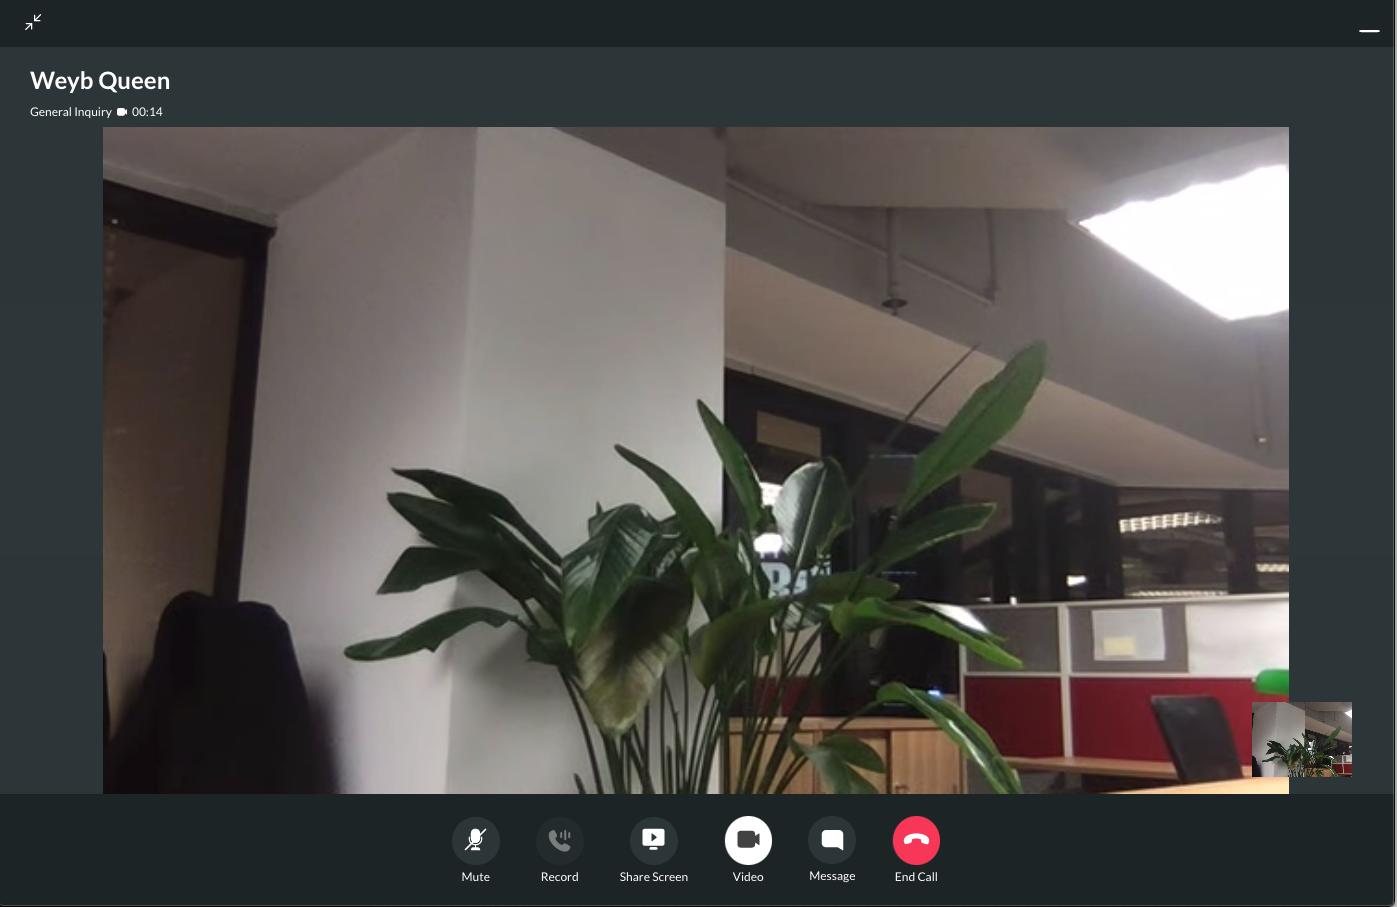 Video call started